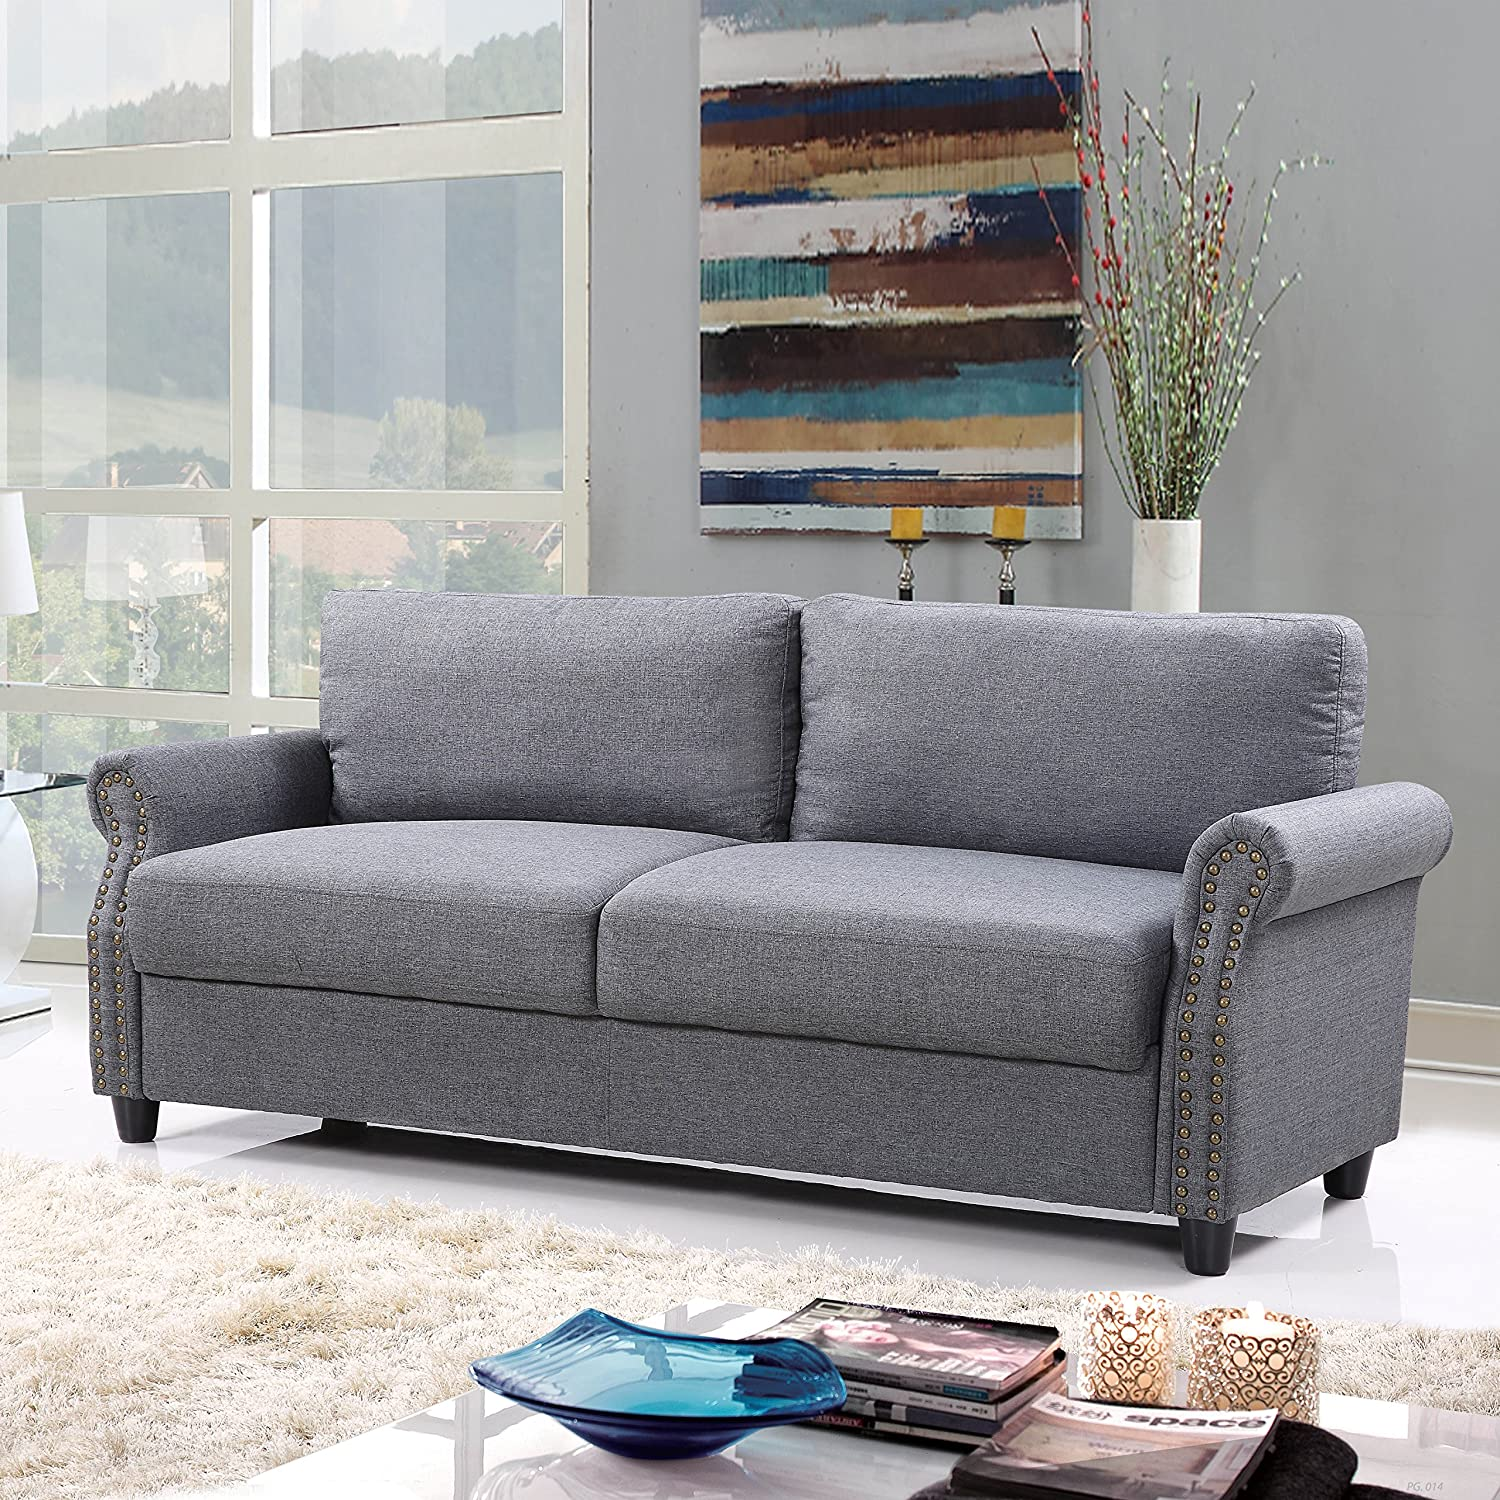 Classic Living Room Linen Sofa with Nailhead Trim Furniture with Storage (Light Grey)